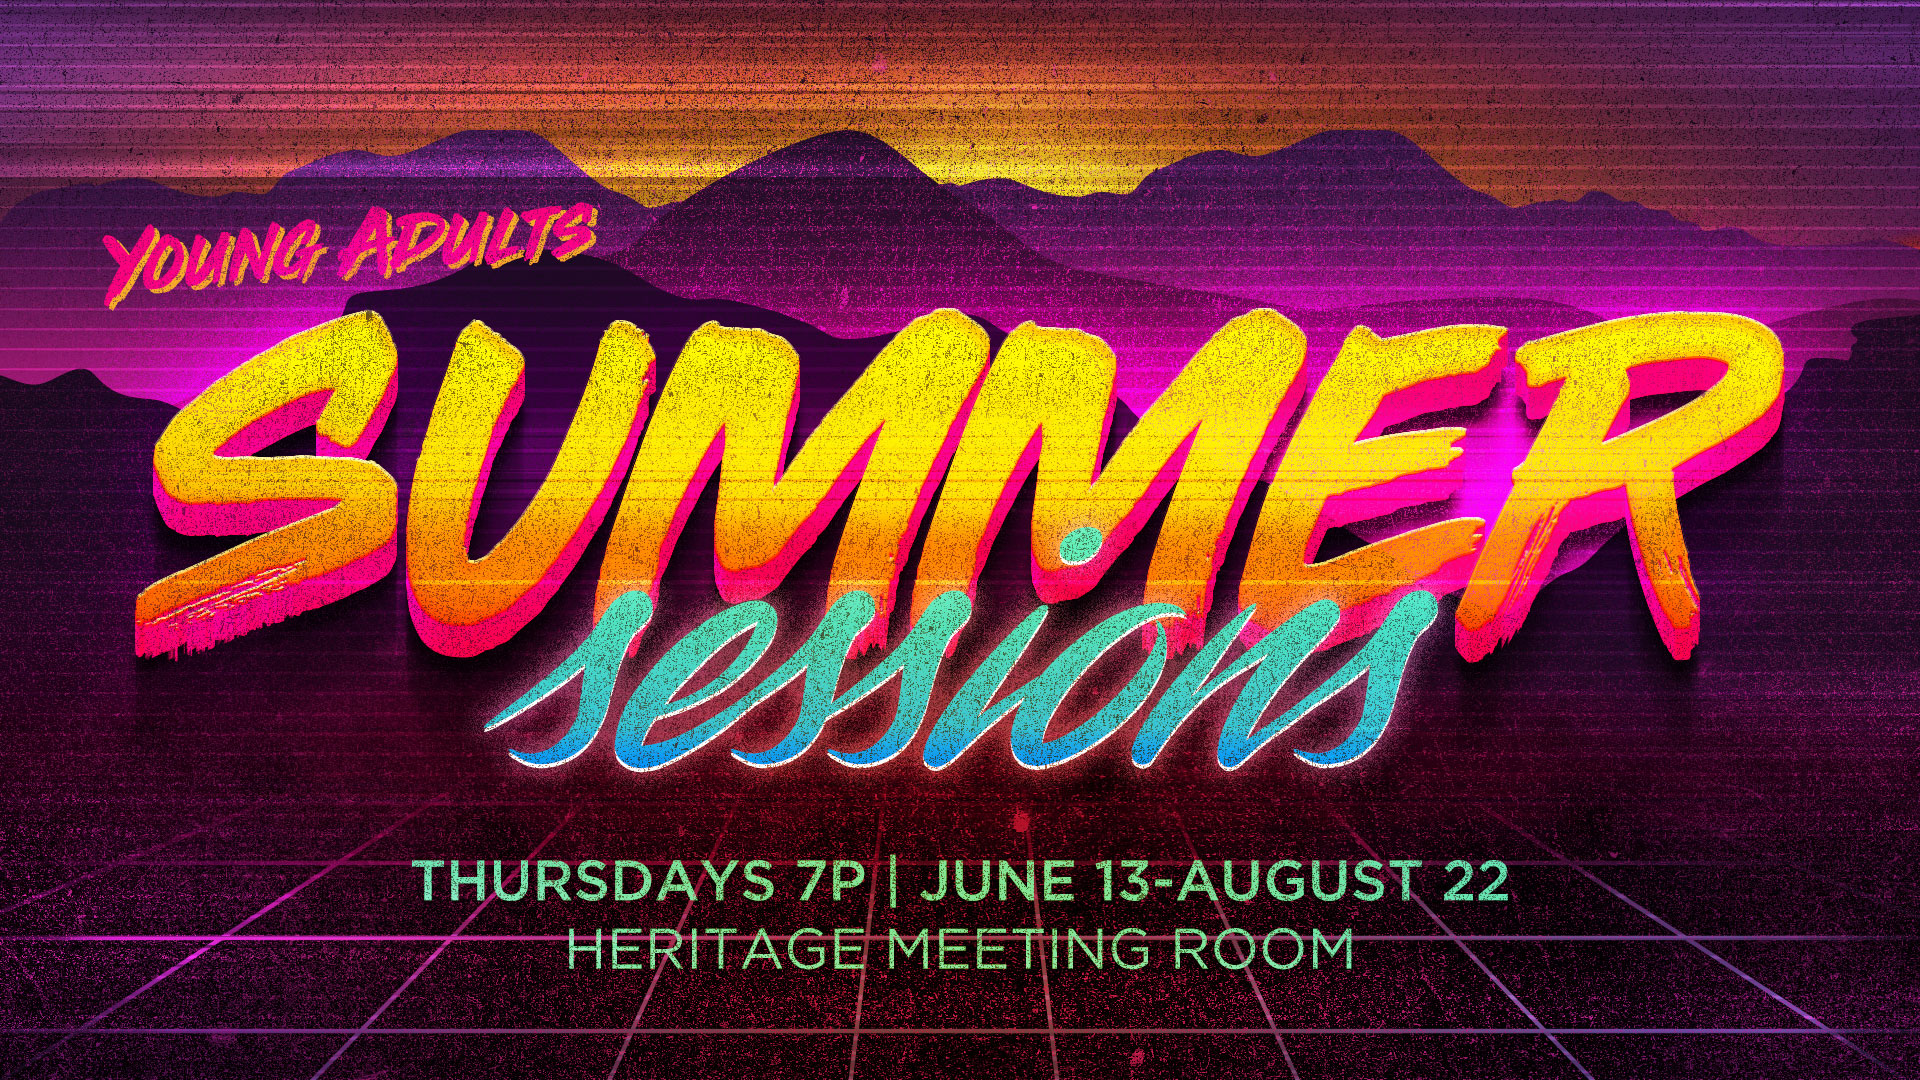 Life Center Central | Young Adults Summer Sessions